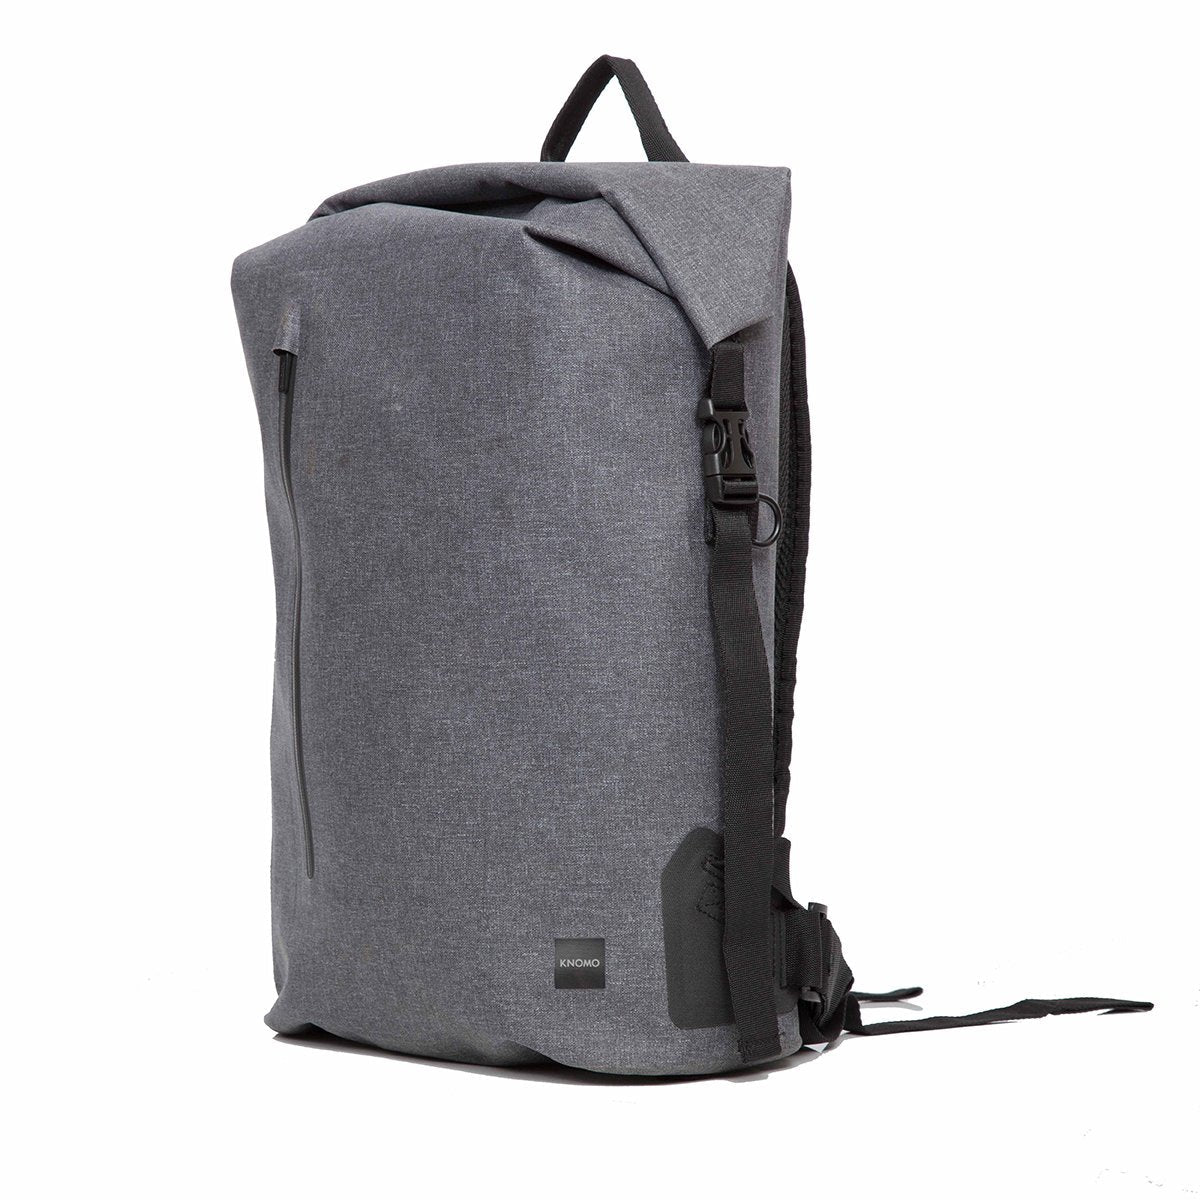 "KNOMO Cromwell Roll-Top Laptop Backpack Three Quarter View 14"" -  Grey 